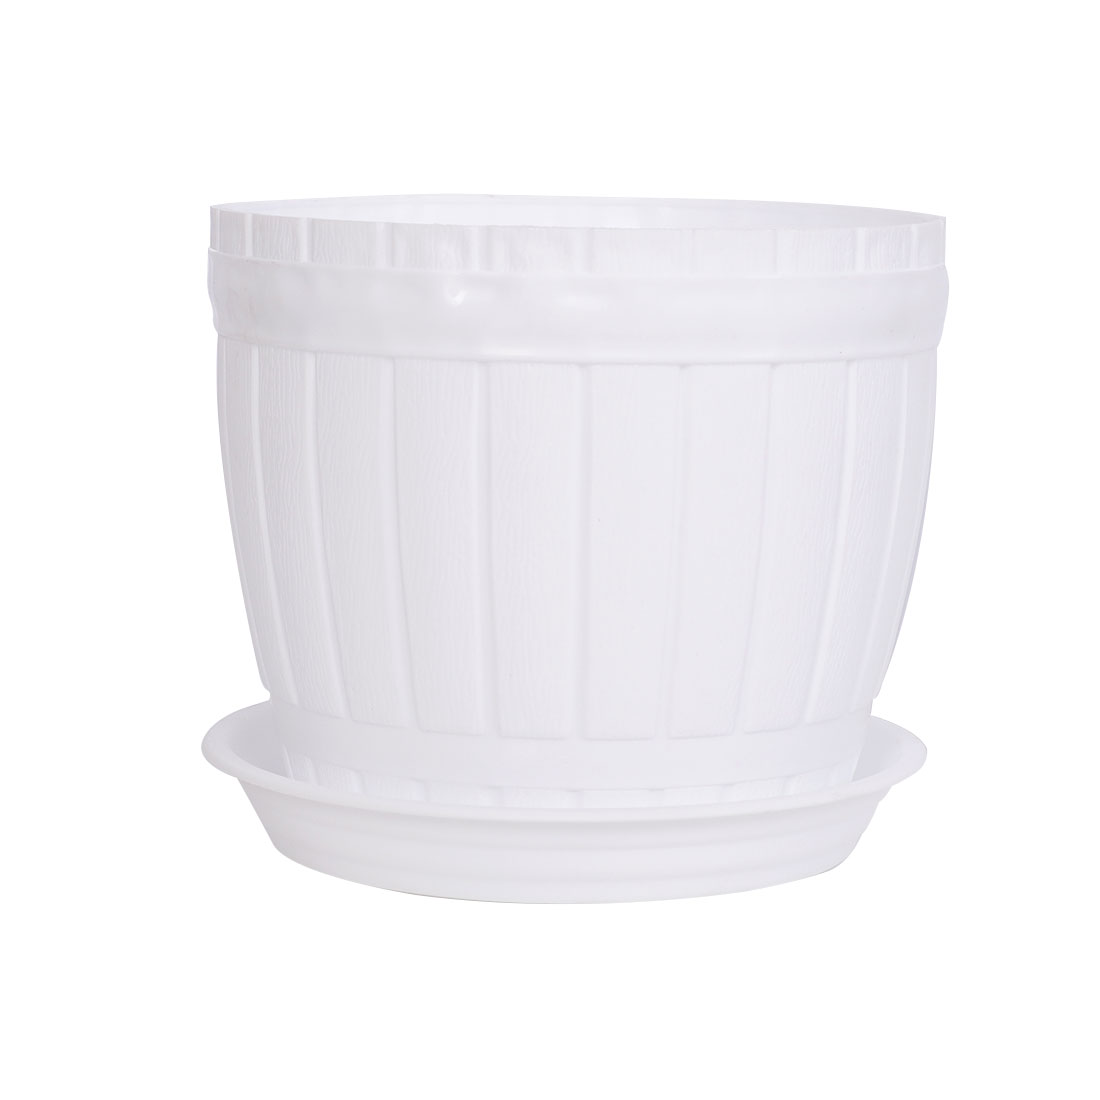 Home Office Hotel Desk Plastic Casks Shape Plant Flower Pot Holder White w Tray